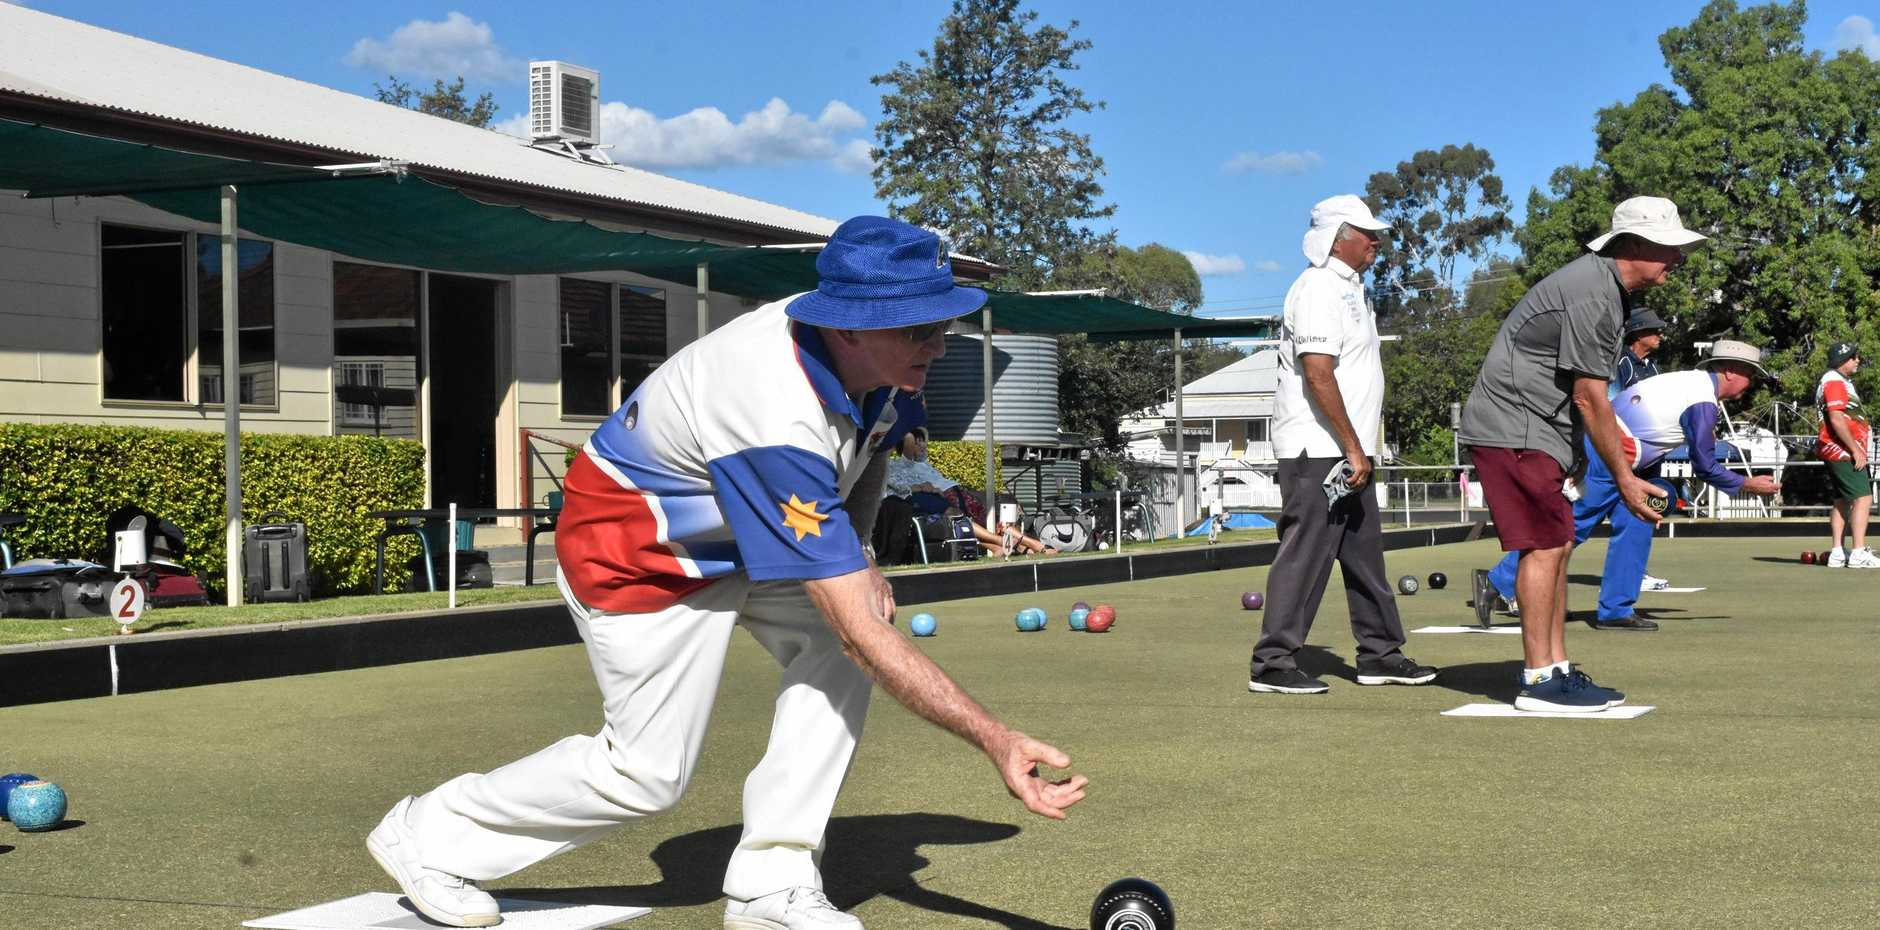 ANNUAL TOURNAMENT: Clubs from around the region gathered together for Dalby Bowls Club's annual tournament.